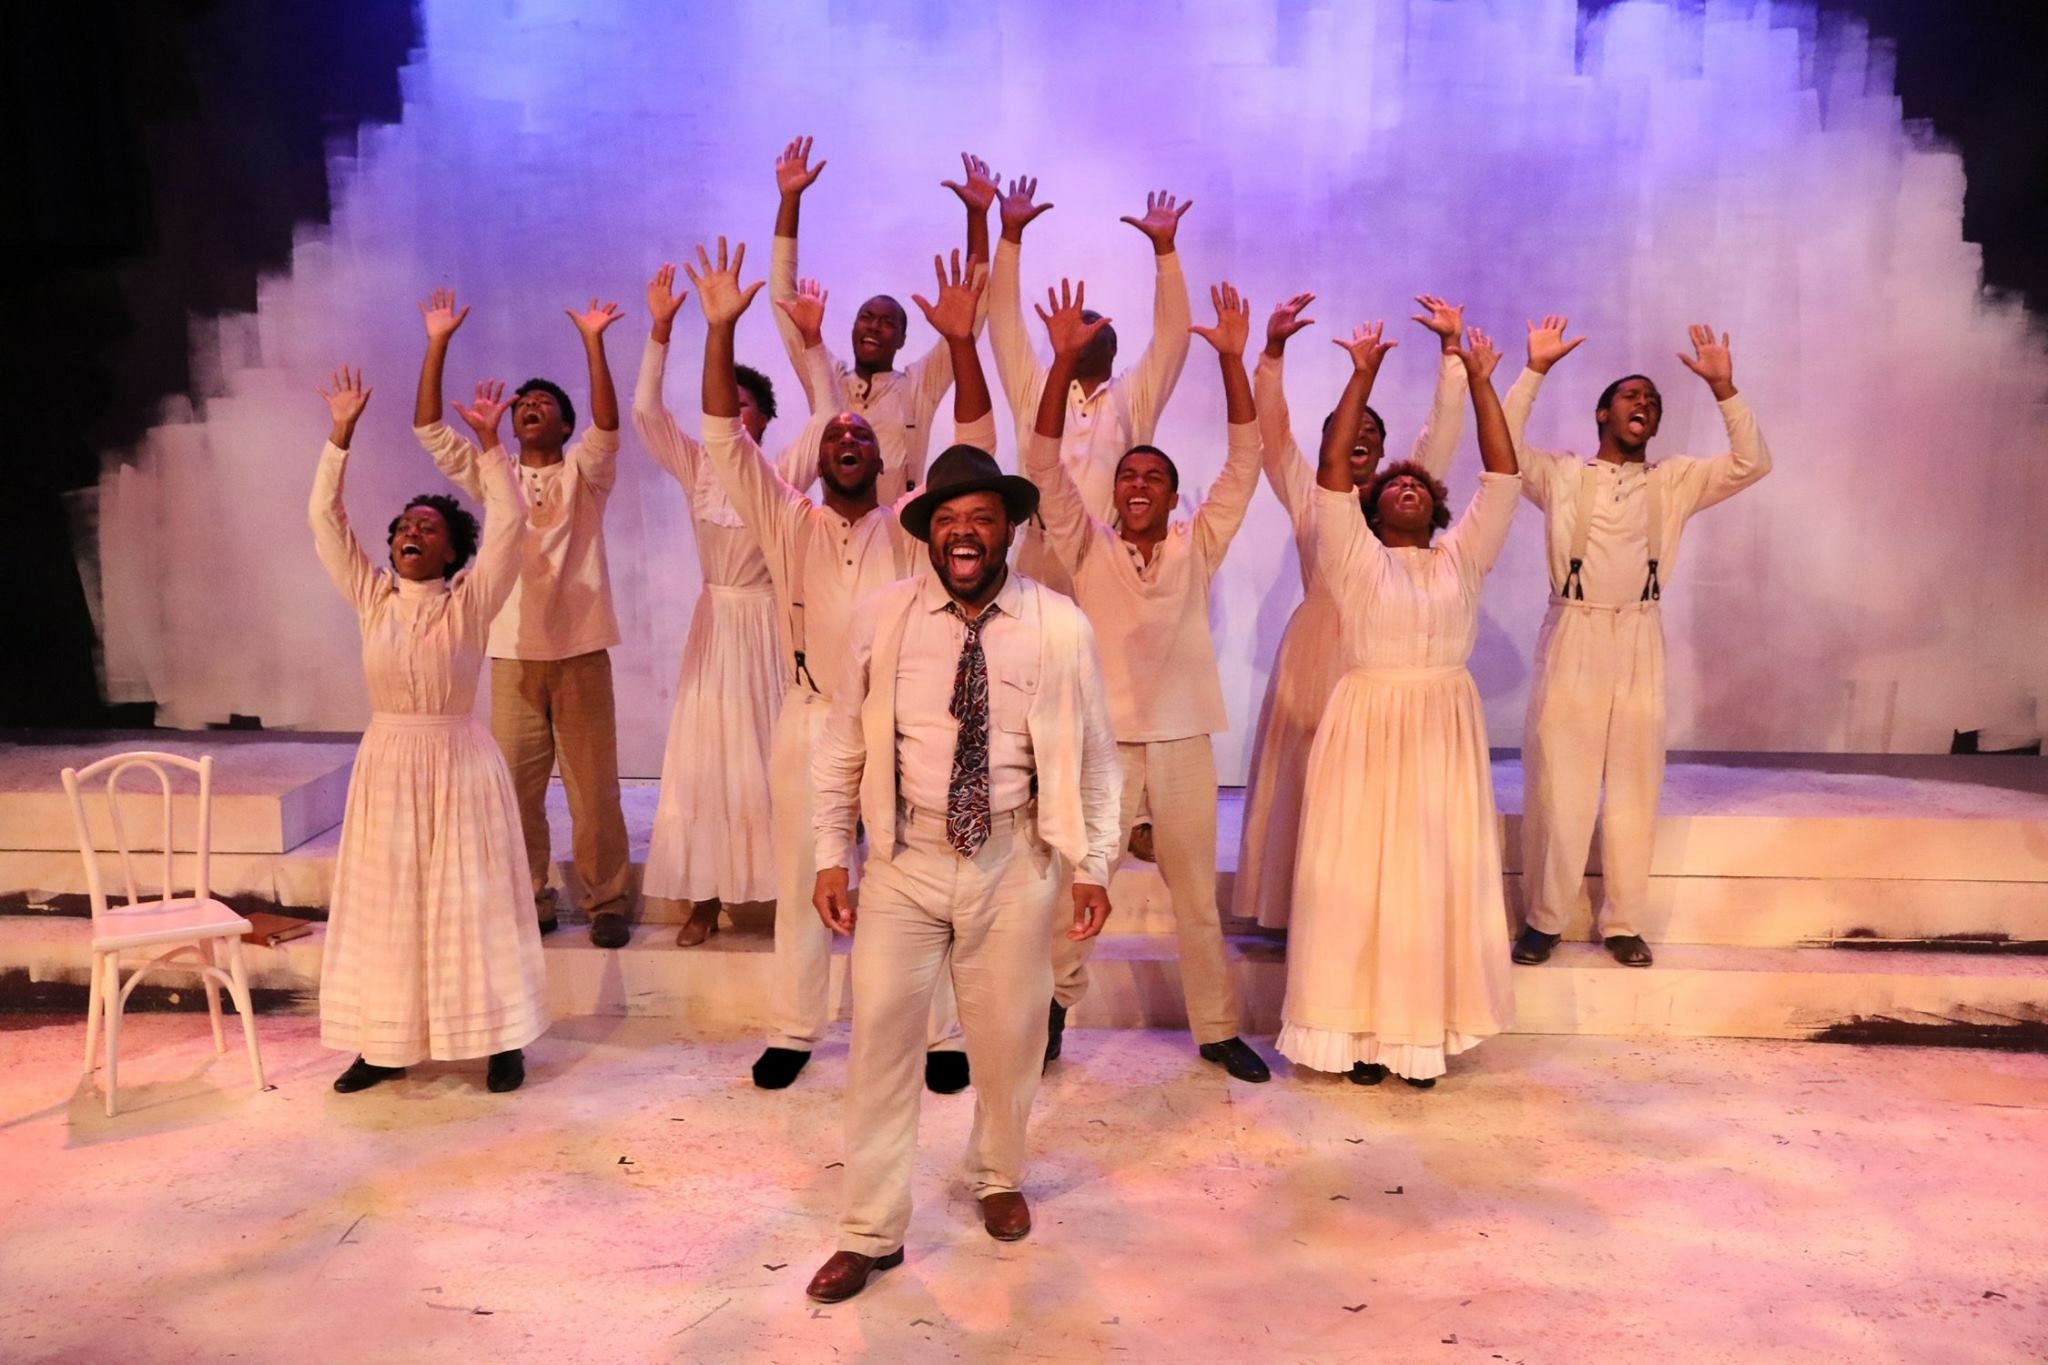 Choreographing 'The Color Purple'